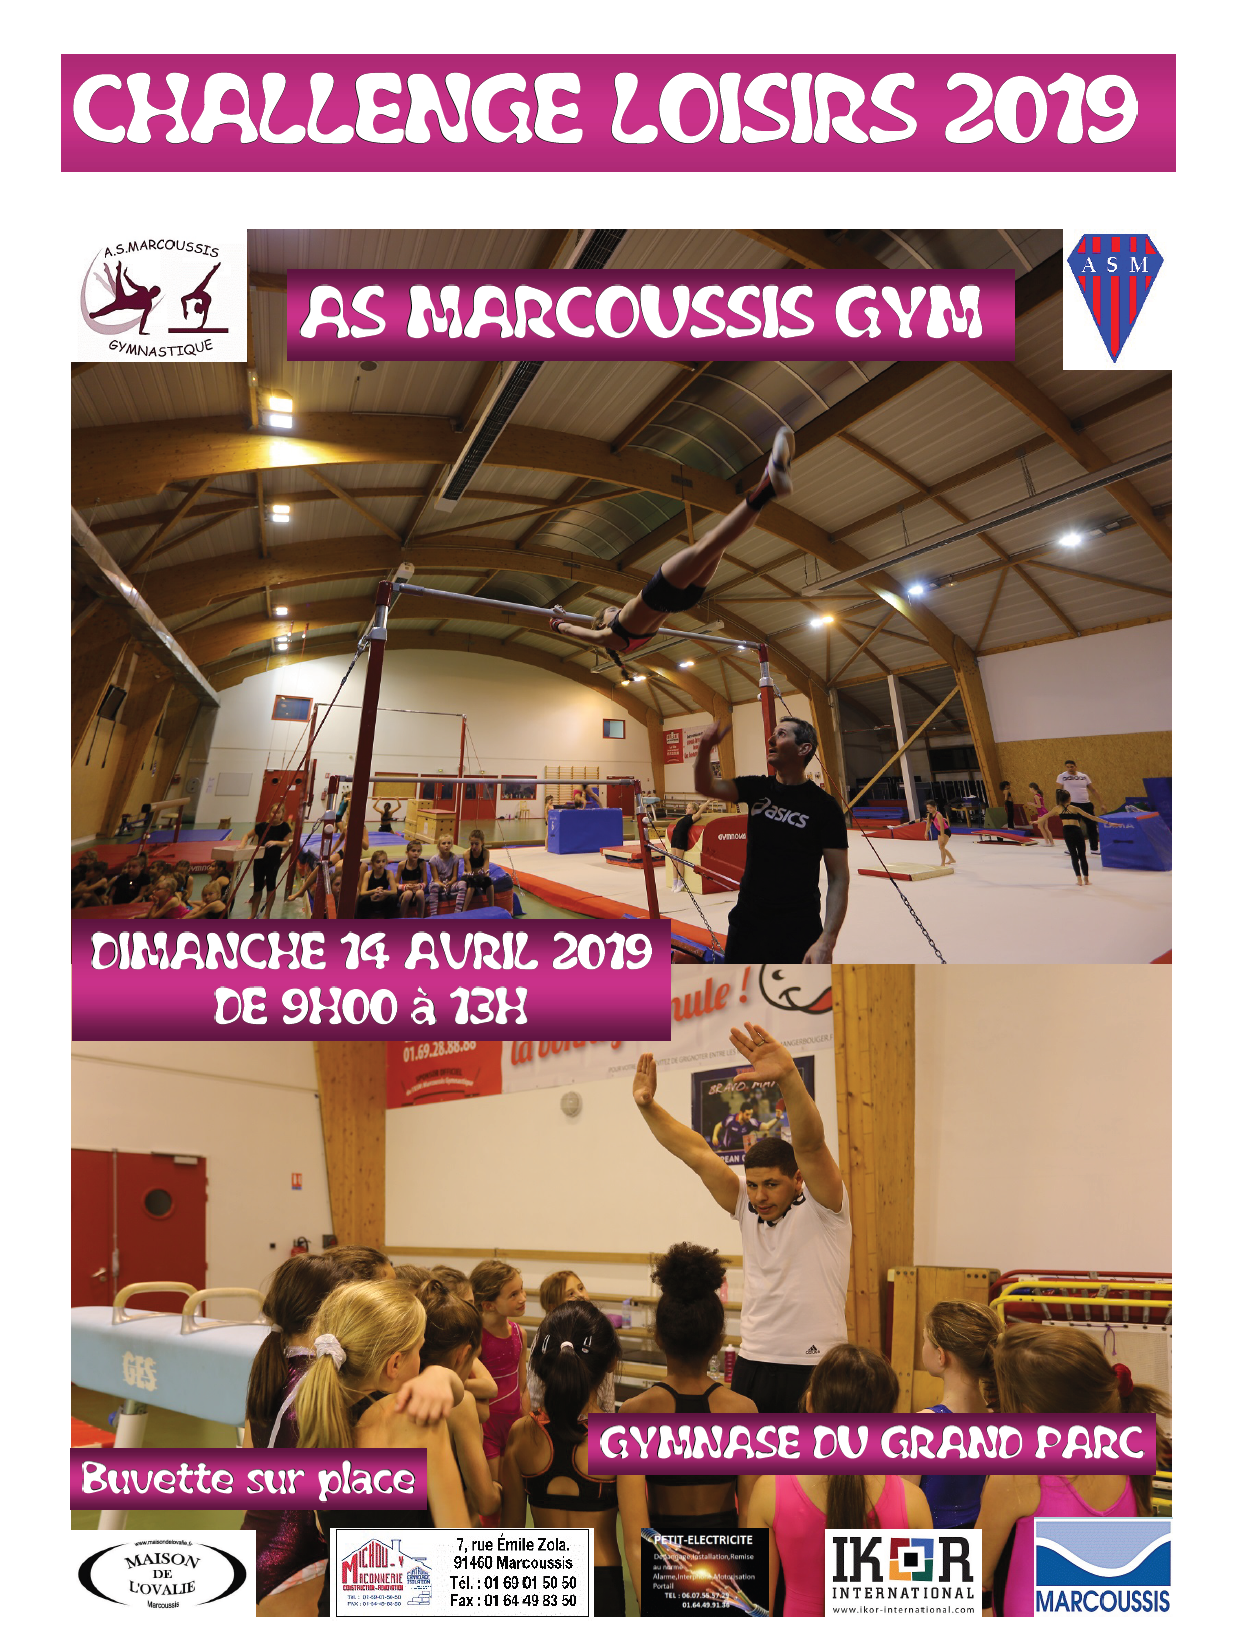 challenge gym loisirs as marcoussis